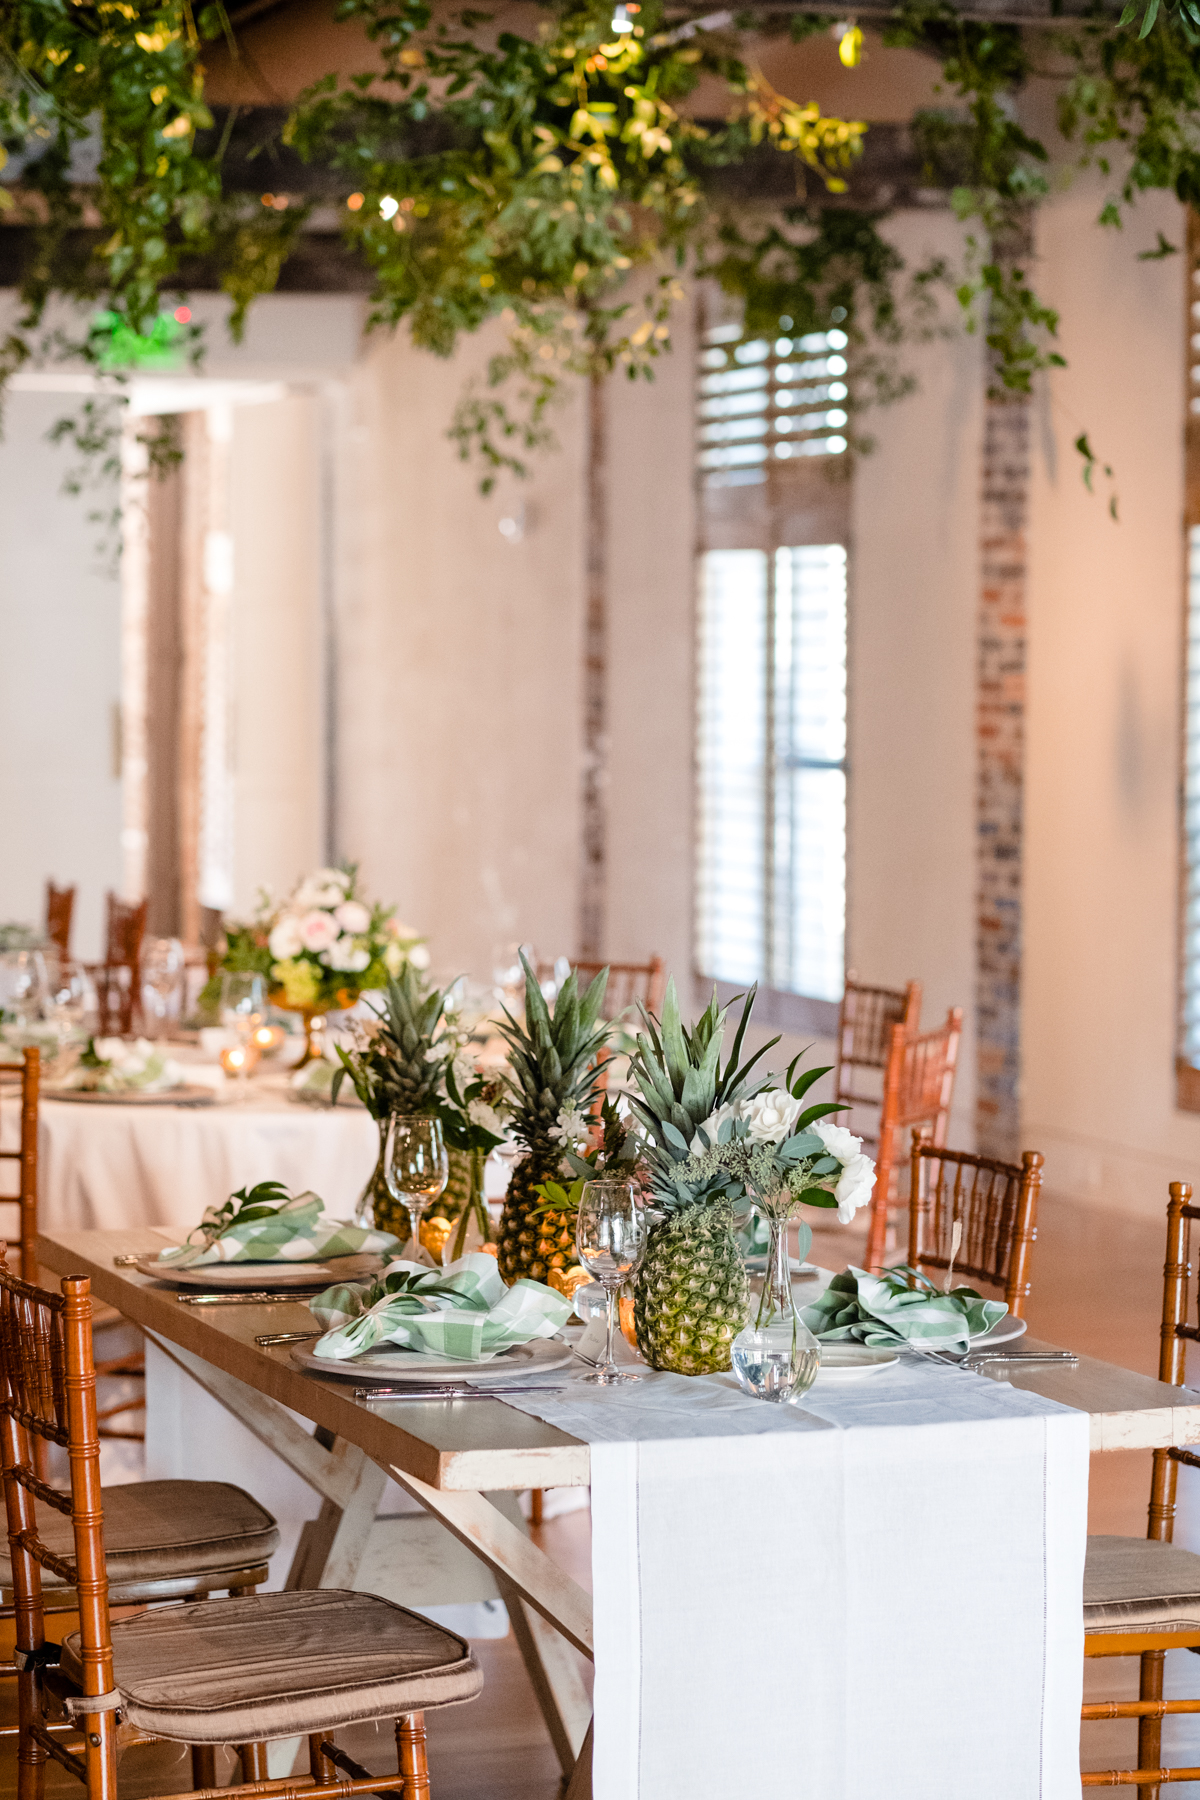 Tips for designing a beautiful tablescape using pineapple centerpieces and mini pineapples in the florals // Rhyme & Reason